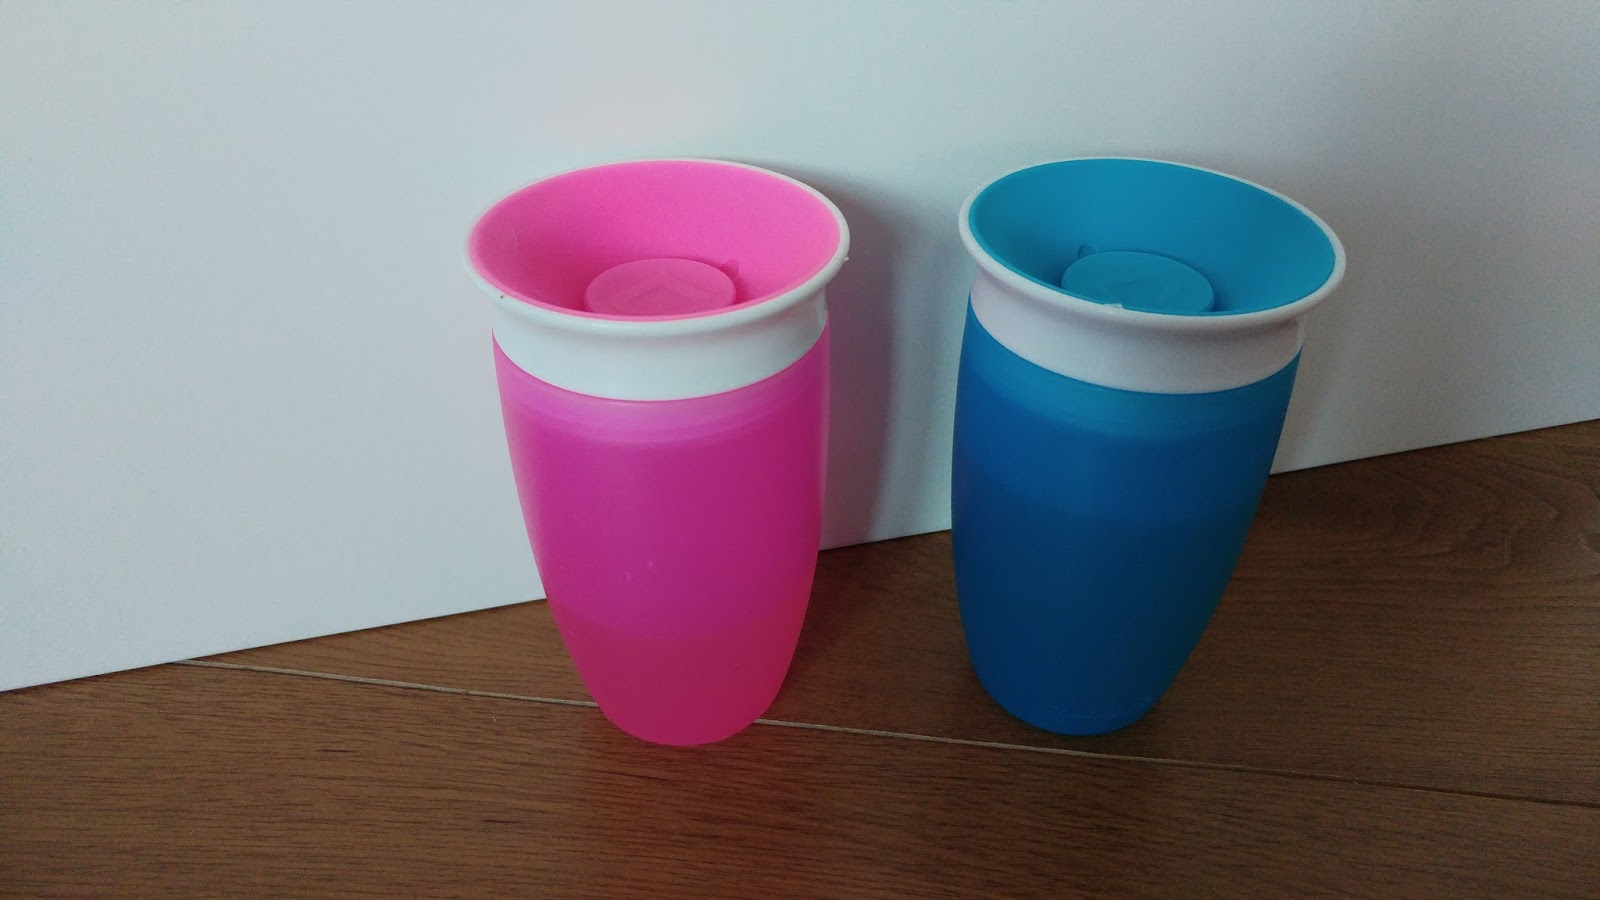 I've struggled to find a decent cup that both Keira and Joshua like, as well as being easy to clean. Cue the Munchkin Miracle 360!